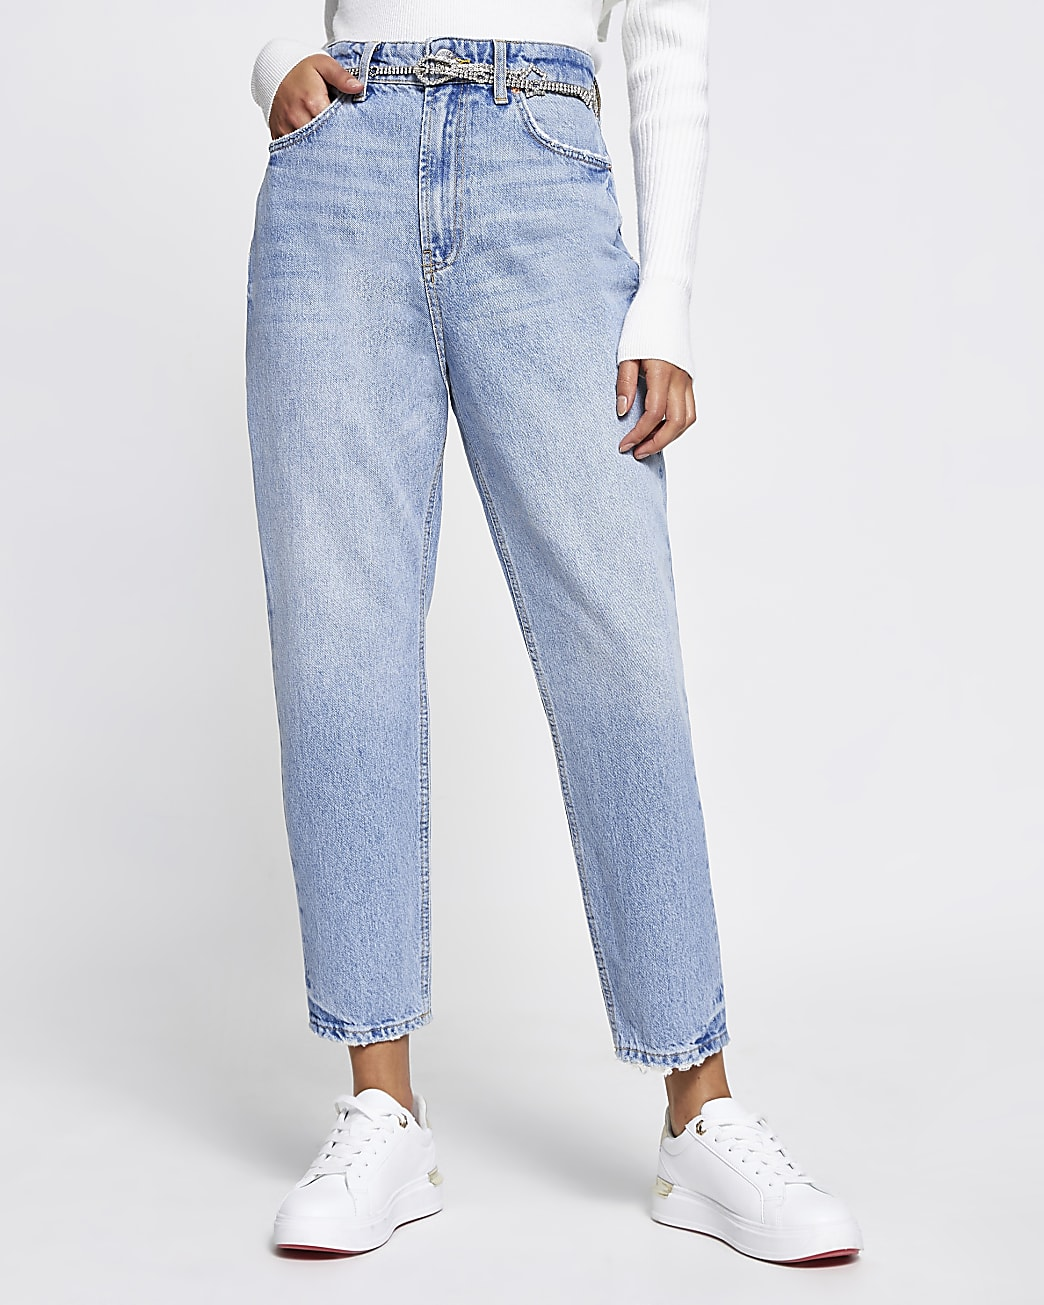 Blue Carrie belted high waisted jeans